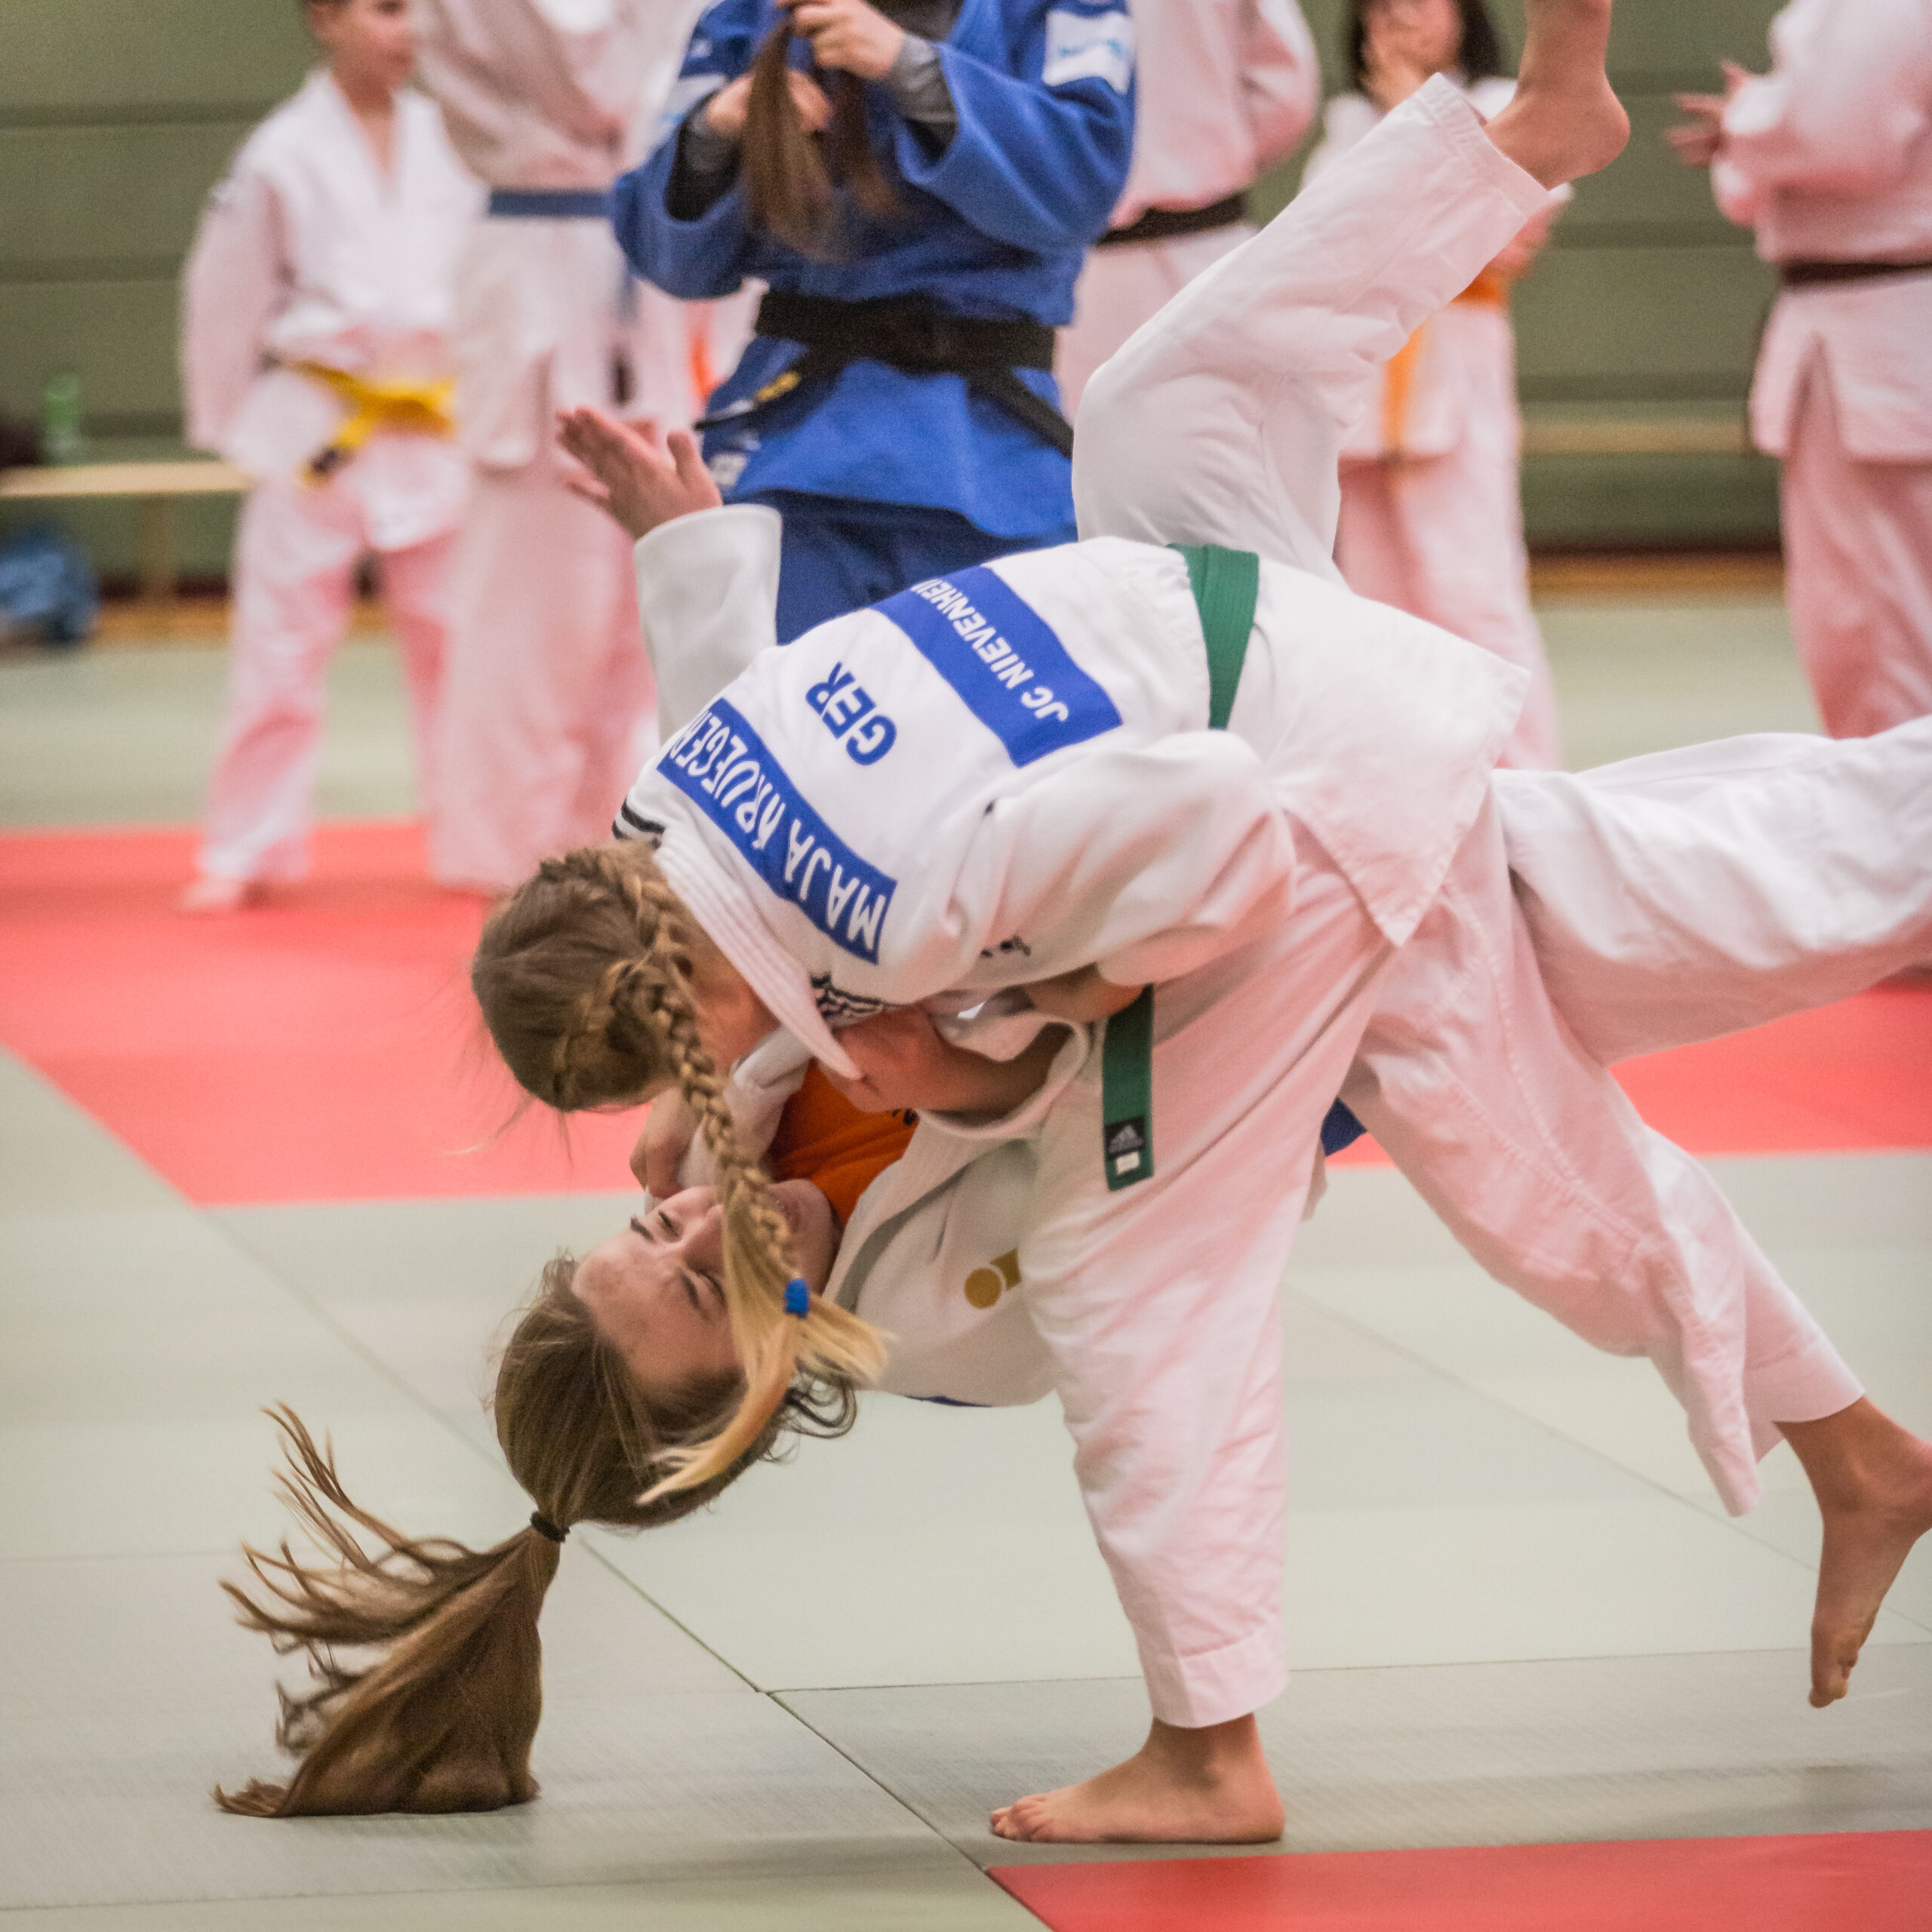 Read more about the article Wettkampf- & Katatraining